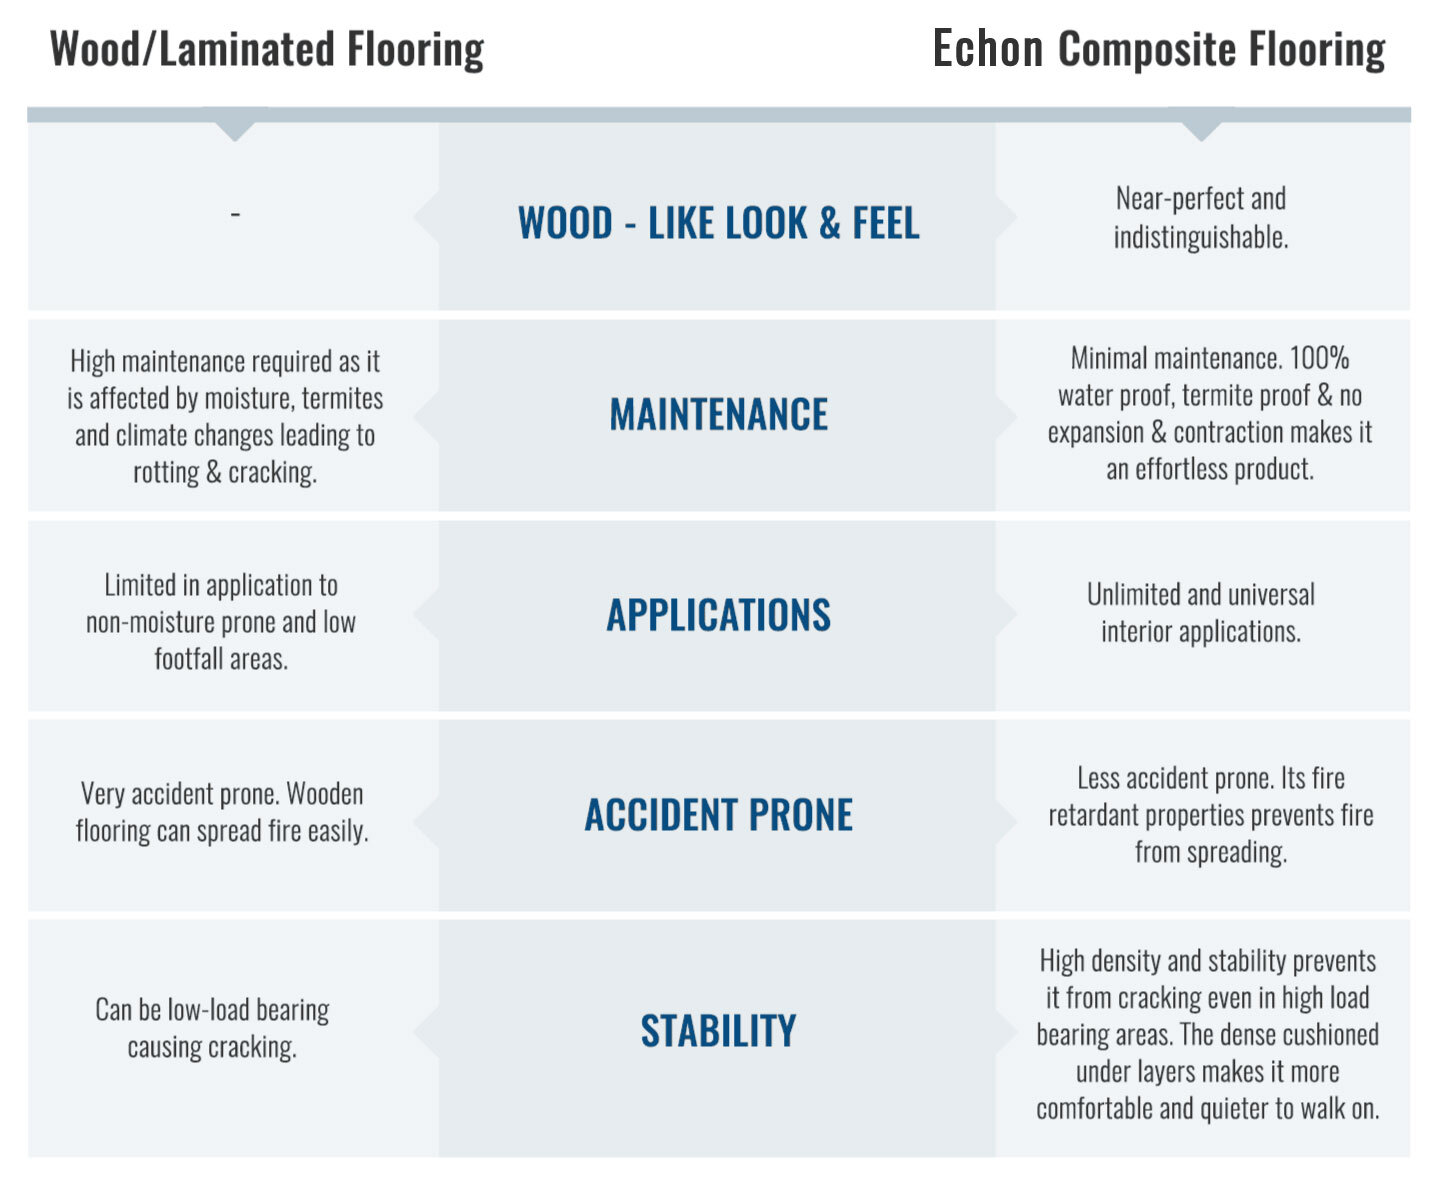 Difference between Wood and Composite Flooring